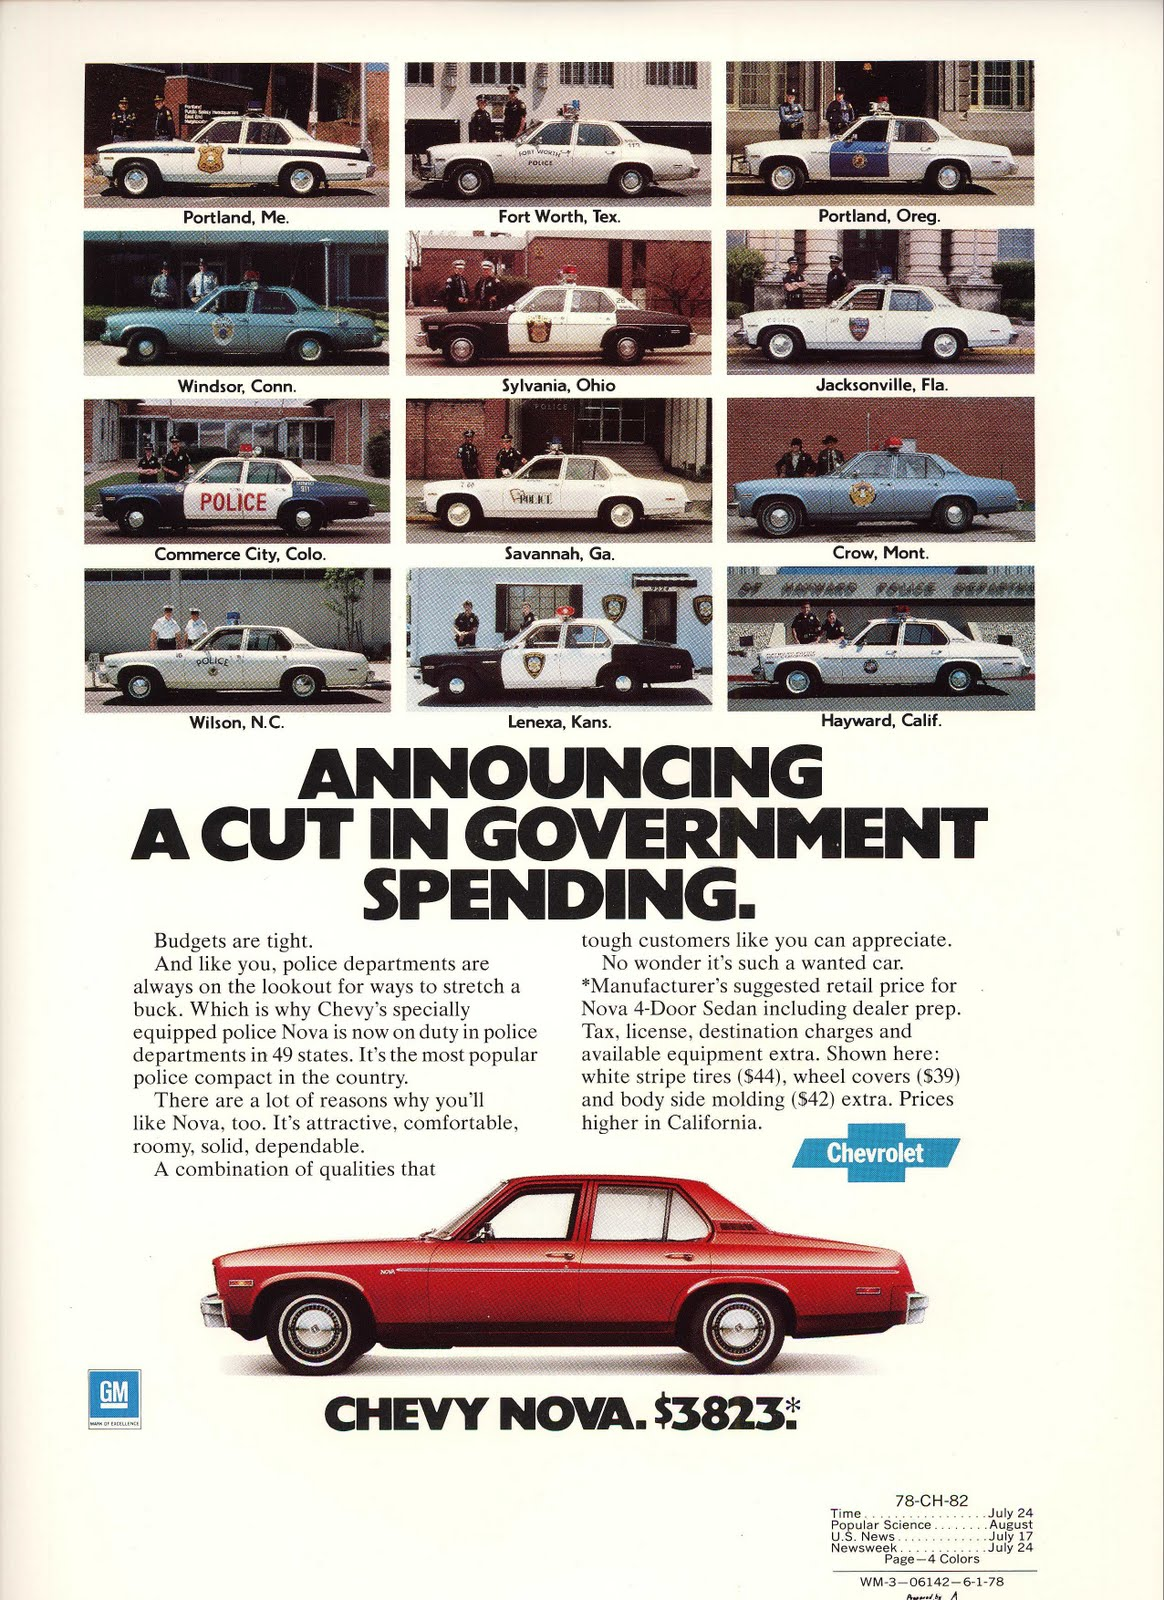 ['82+Nova-cut+in+Govt.+spending]